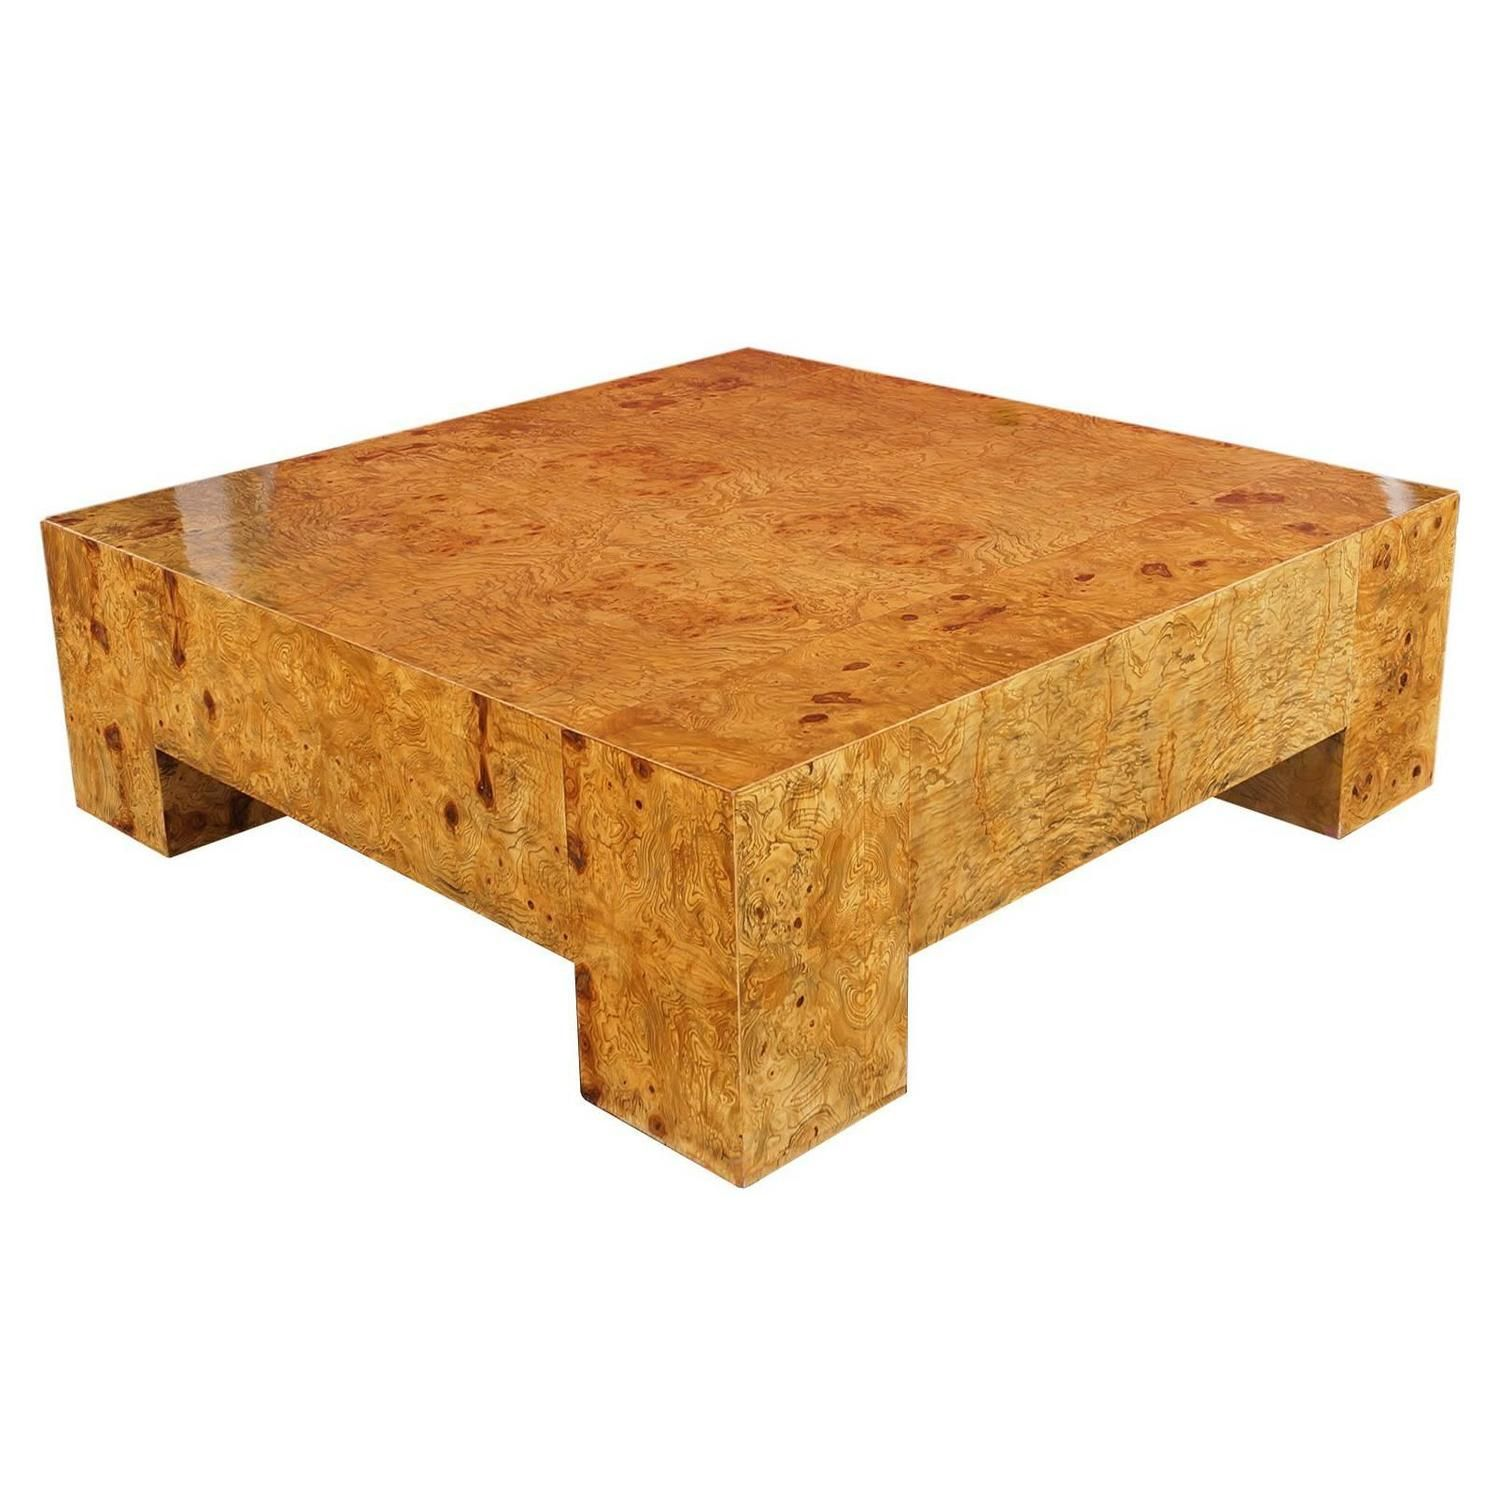 Burl Wood Coffee Table by Milo Baughman For Sale at 1stdibs